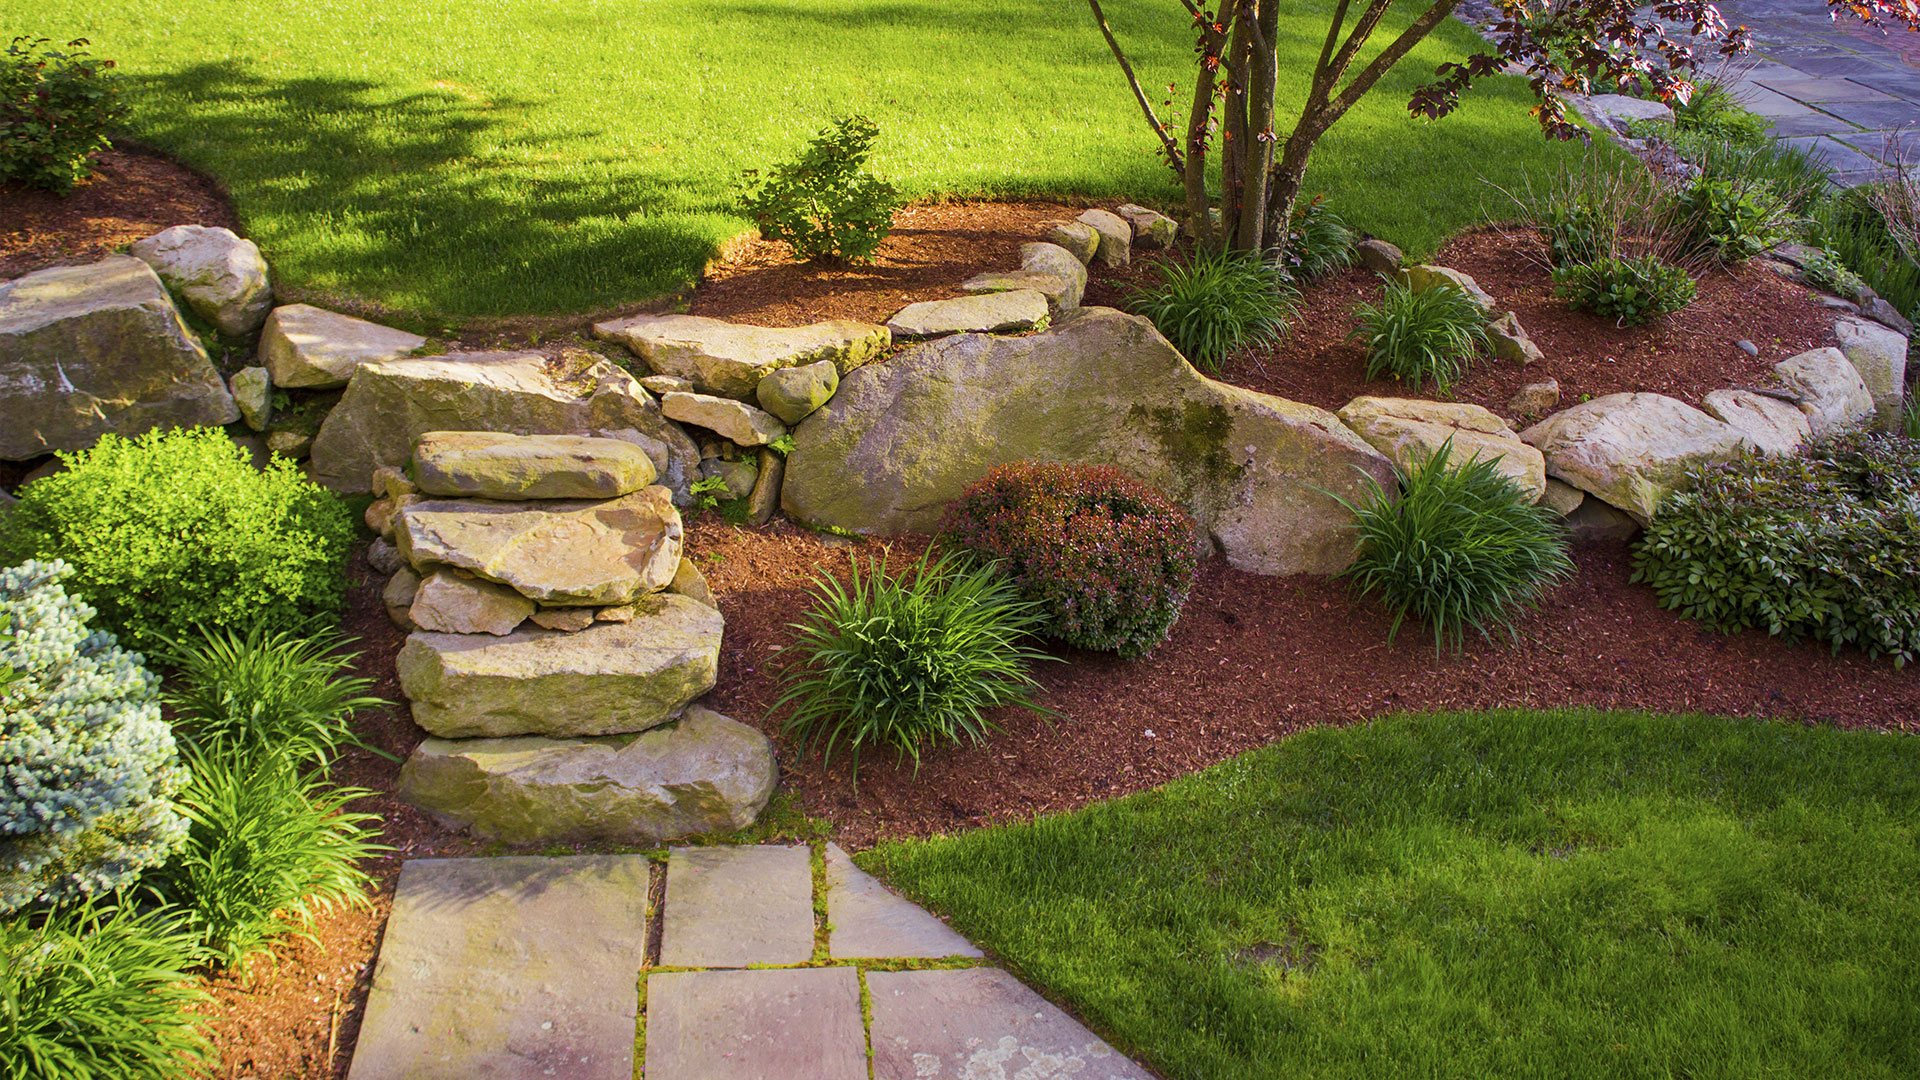 Greenscapes Lawn Services & Landscape Design Lawn Maintenance, Landscaping and Lawn Care slide 3